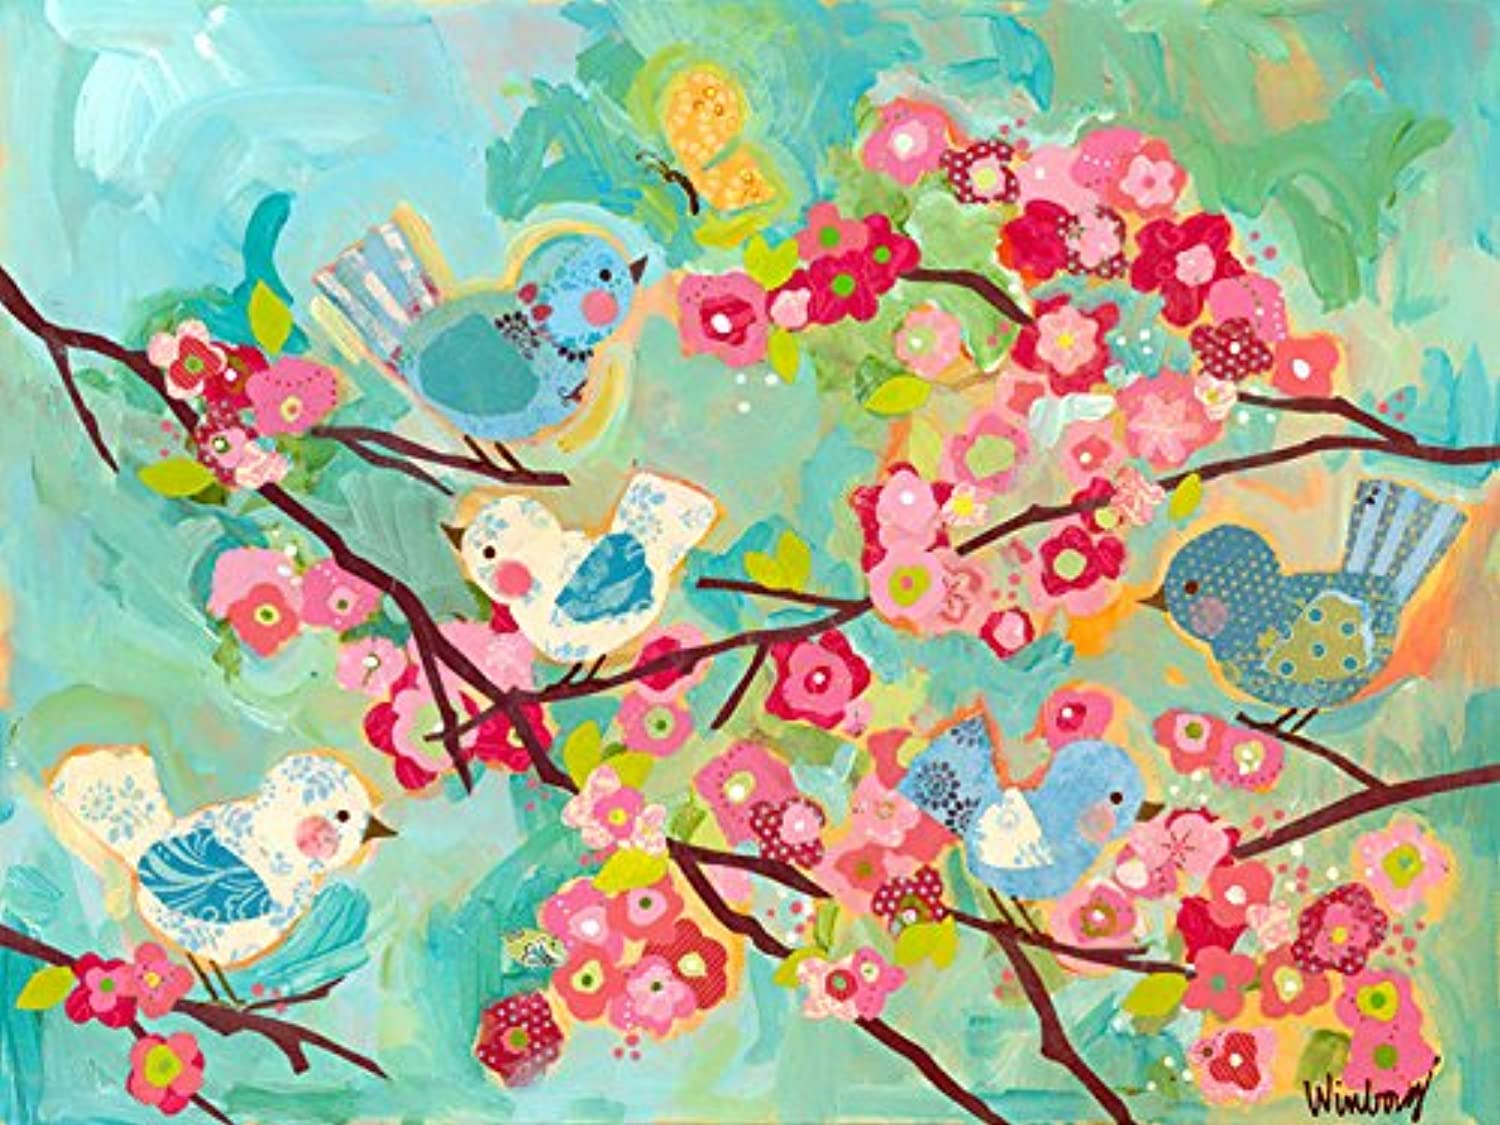 Oopsy Daisy Cherry Blossom Birdies Stretched Canvas Wall Art, 24  X 18